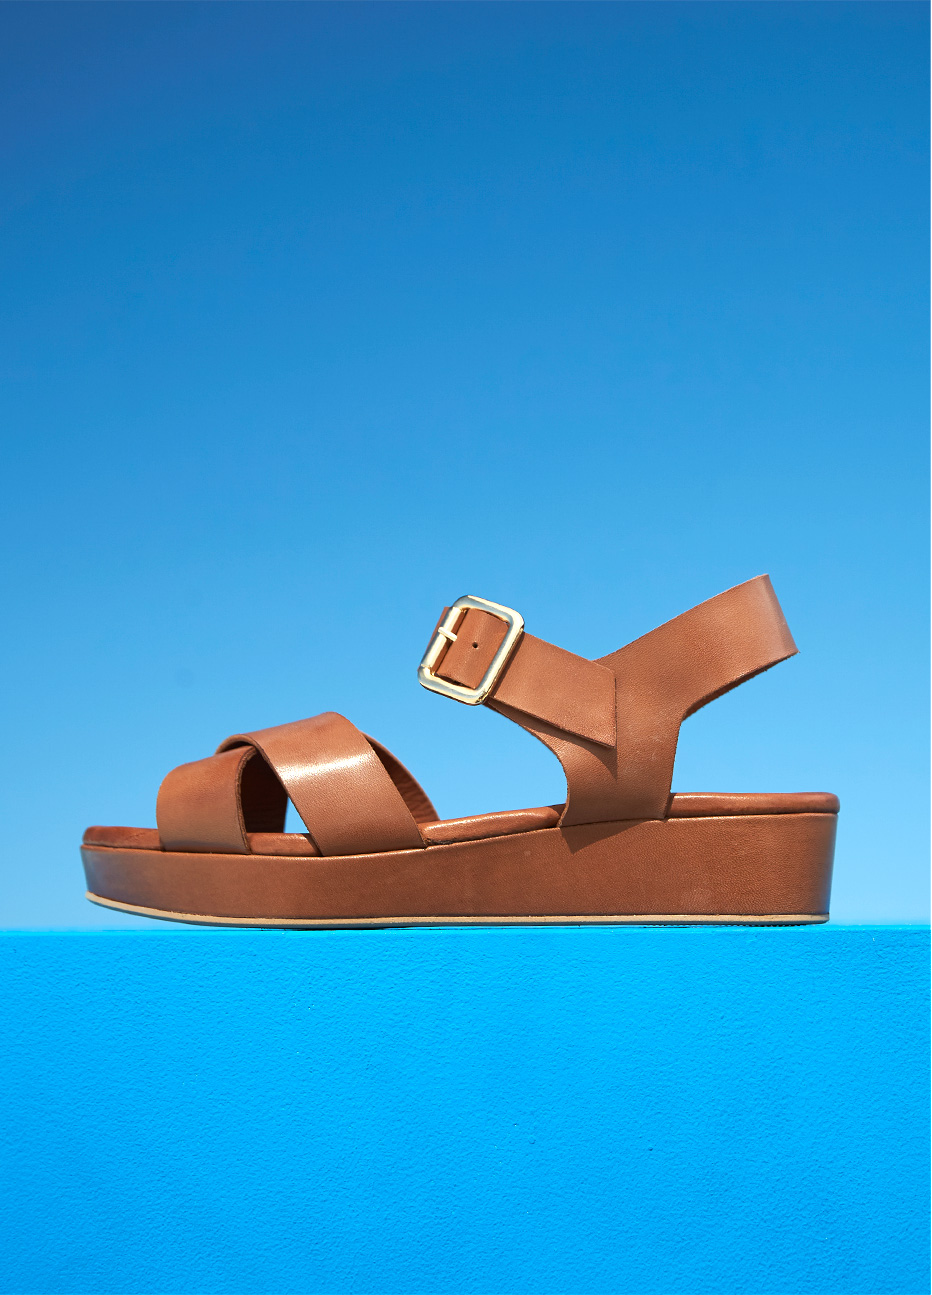 rown leather flatform sandal from Hobbs set against a blue background.